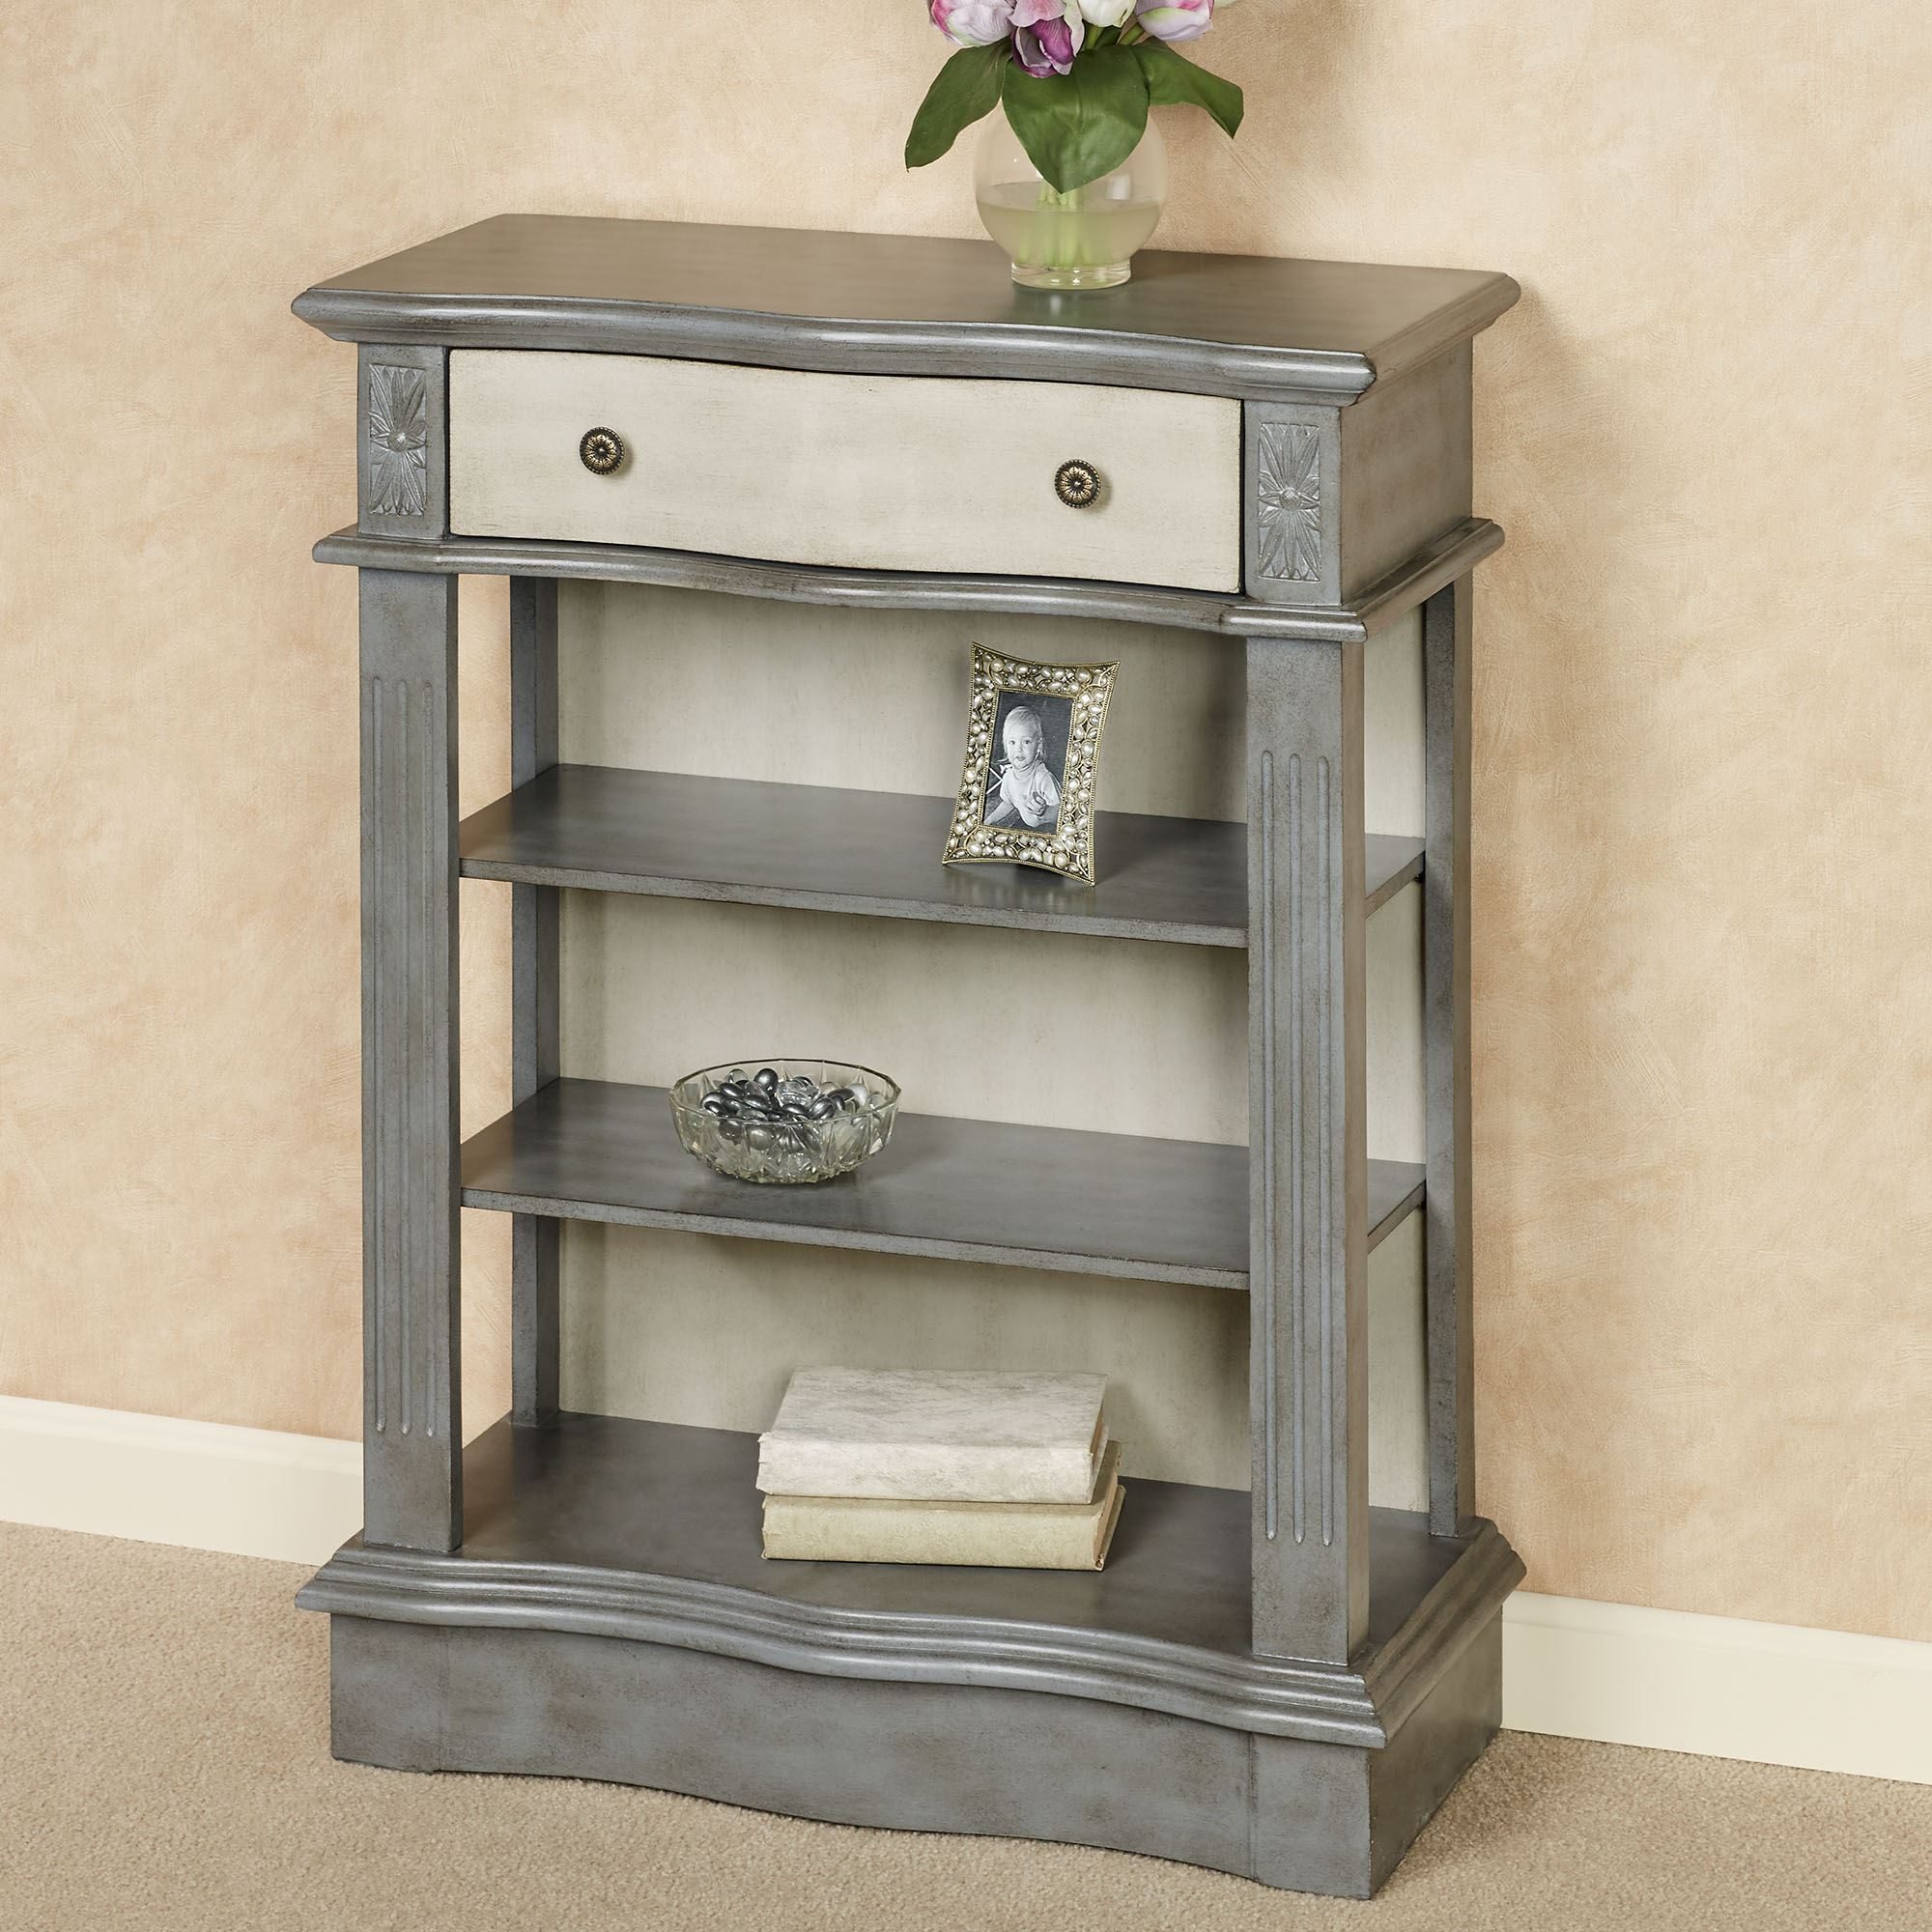 Factory Seconds Kitchen Cabinets: Cody Gray Open Shelf Storage Accent Cabinet